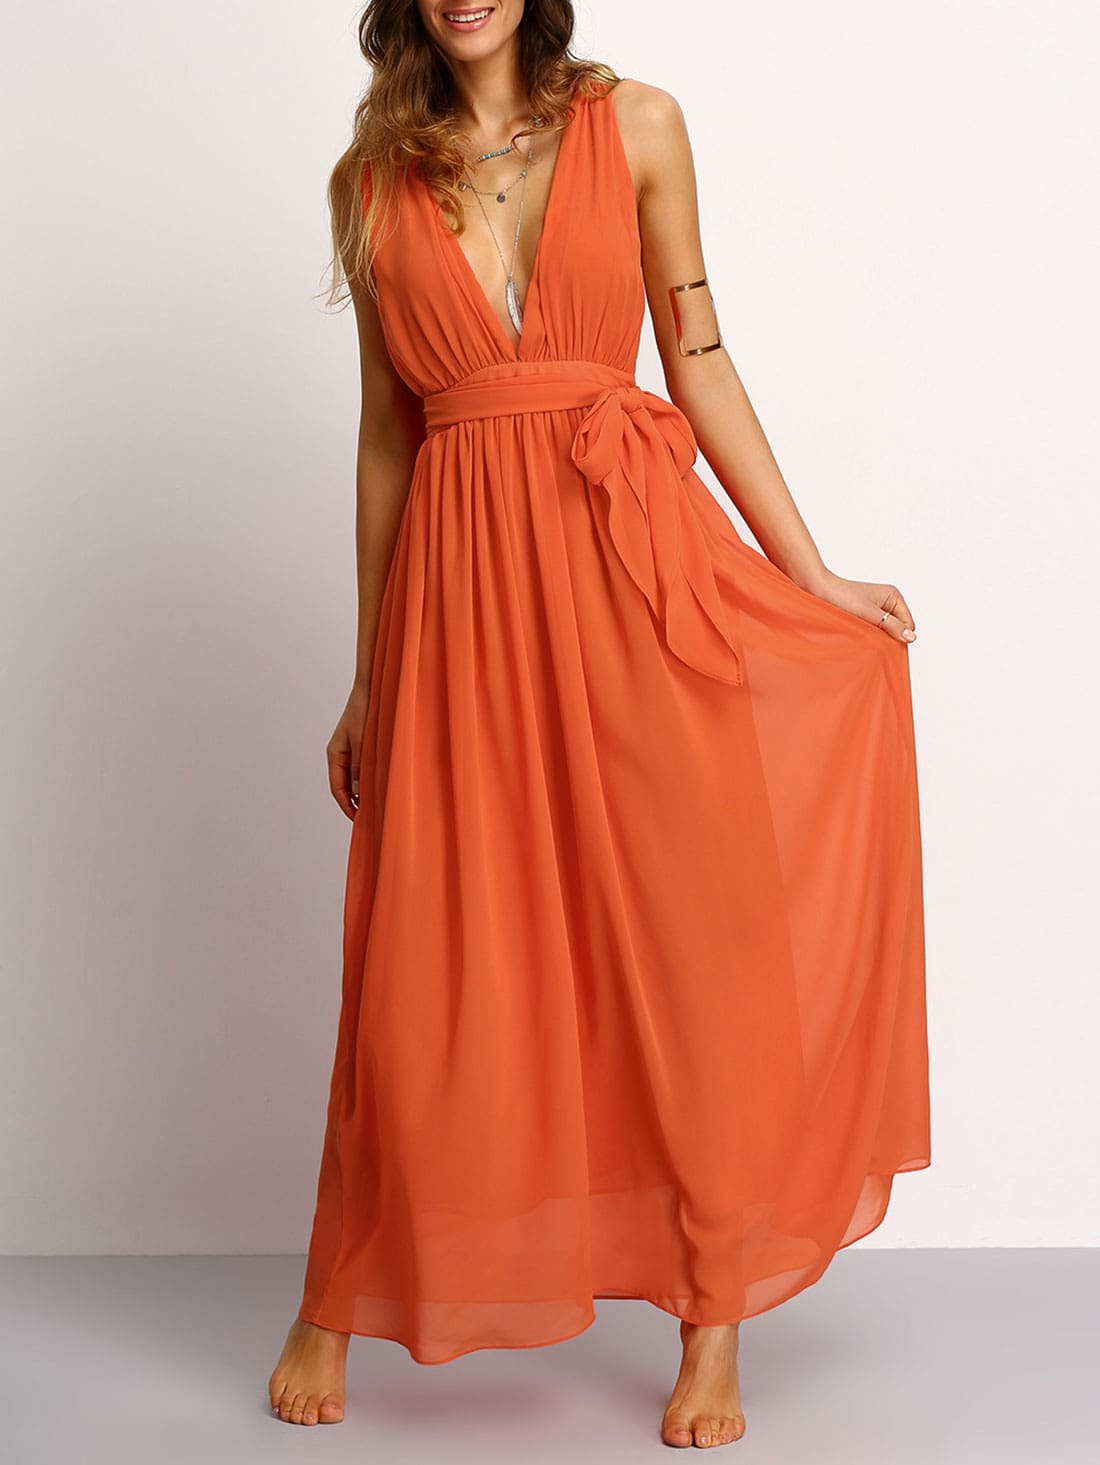 Orange Deep V Neck Self Tie Waist Maxi Dress Emmacloth Women Fast Fashion Online